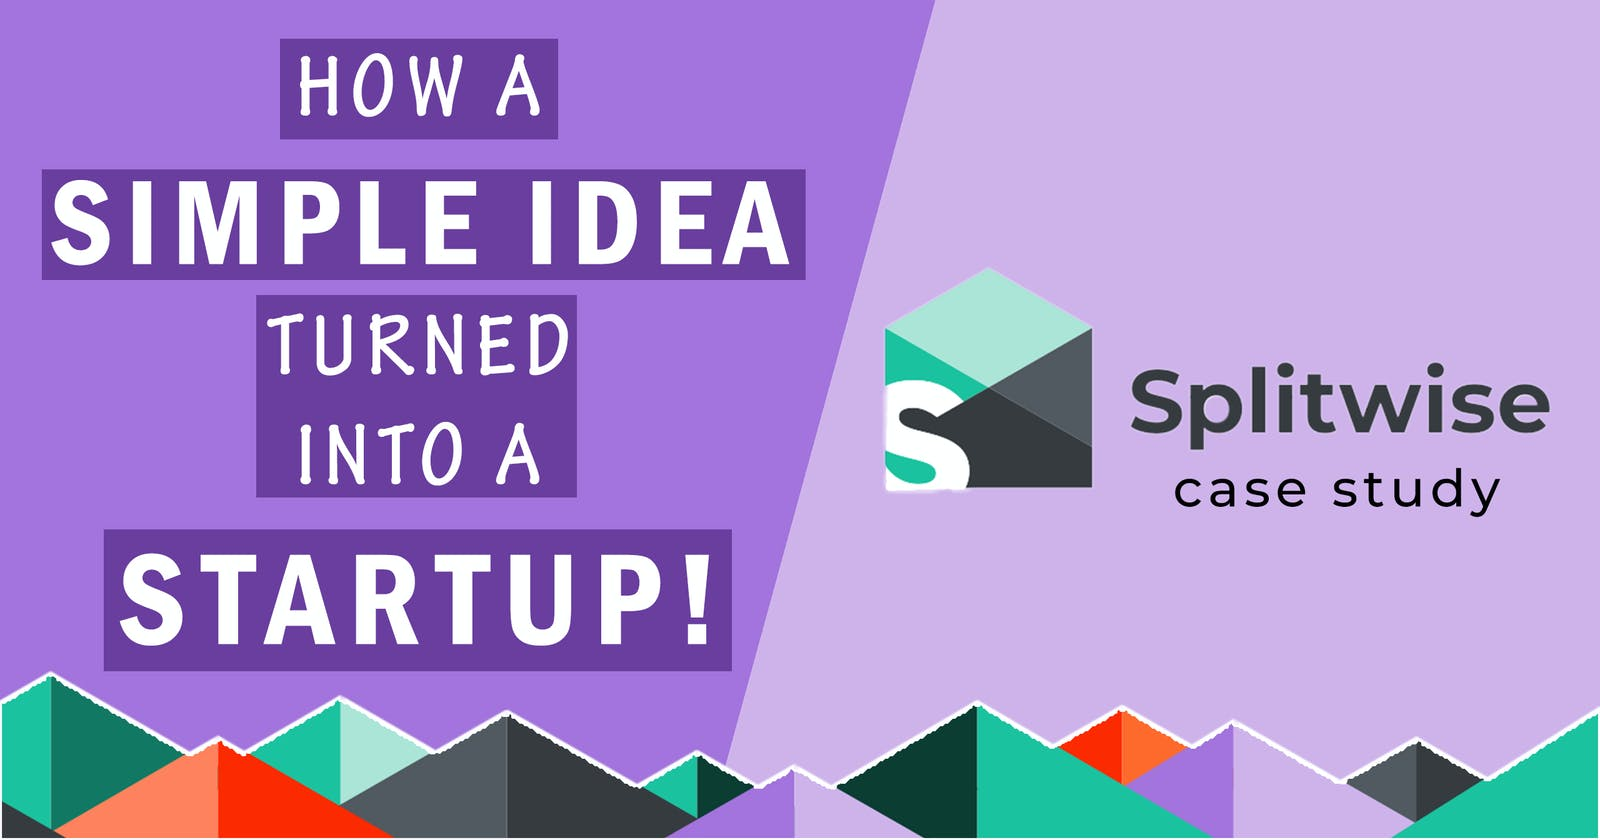 How solving a simple day-to-day problem can turn into a startup? | Splitwise